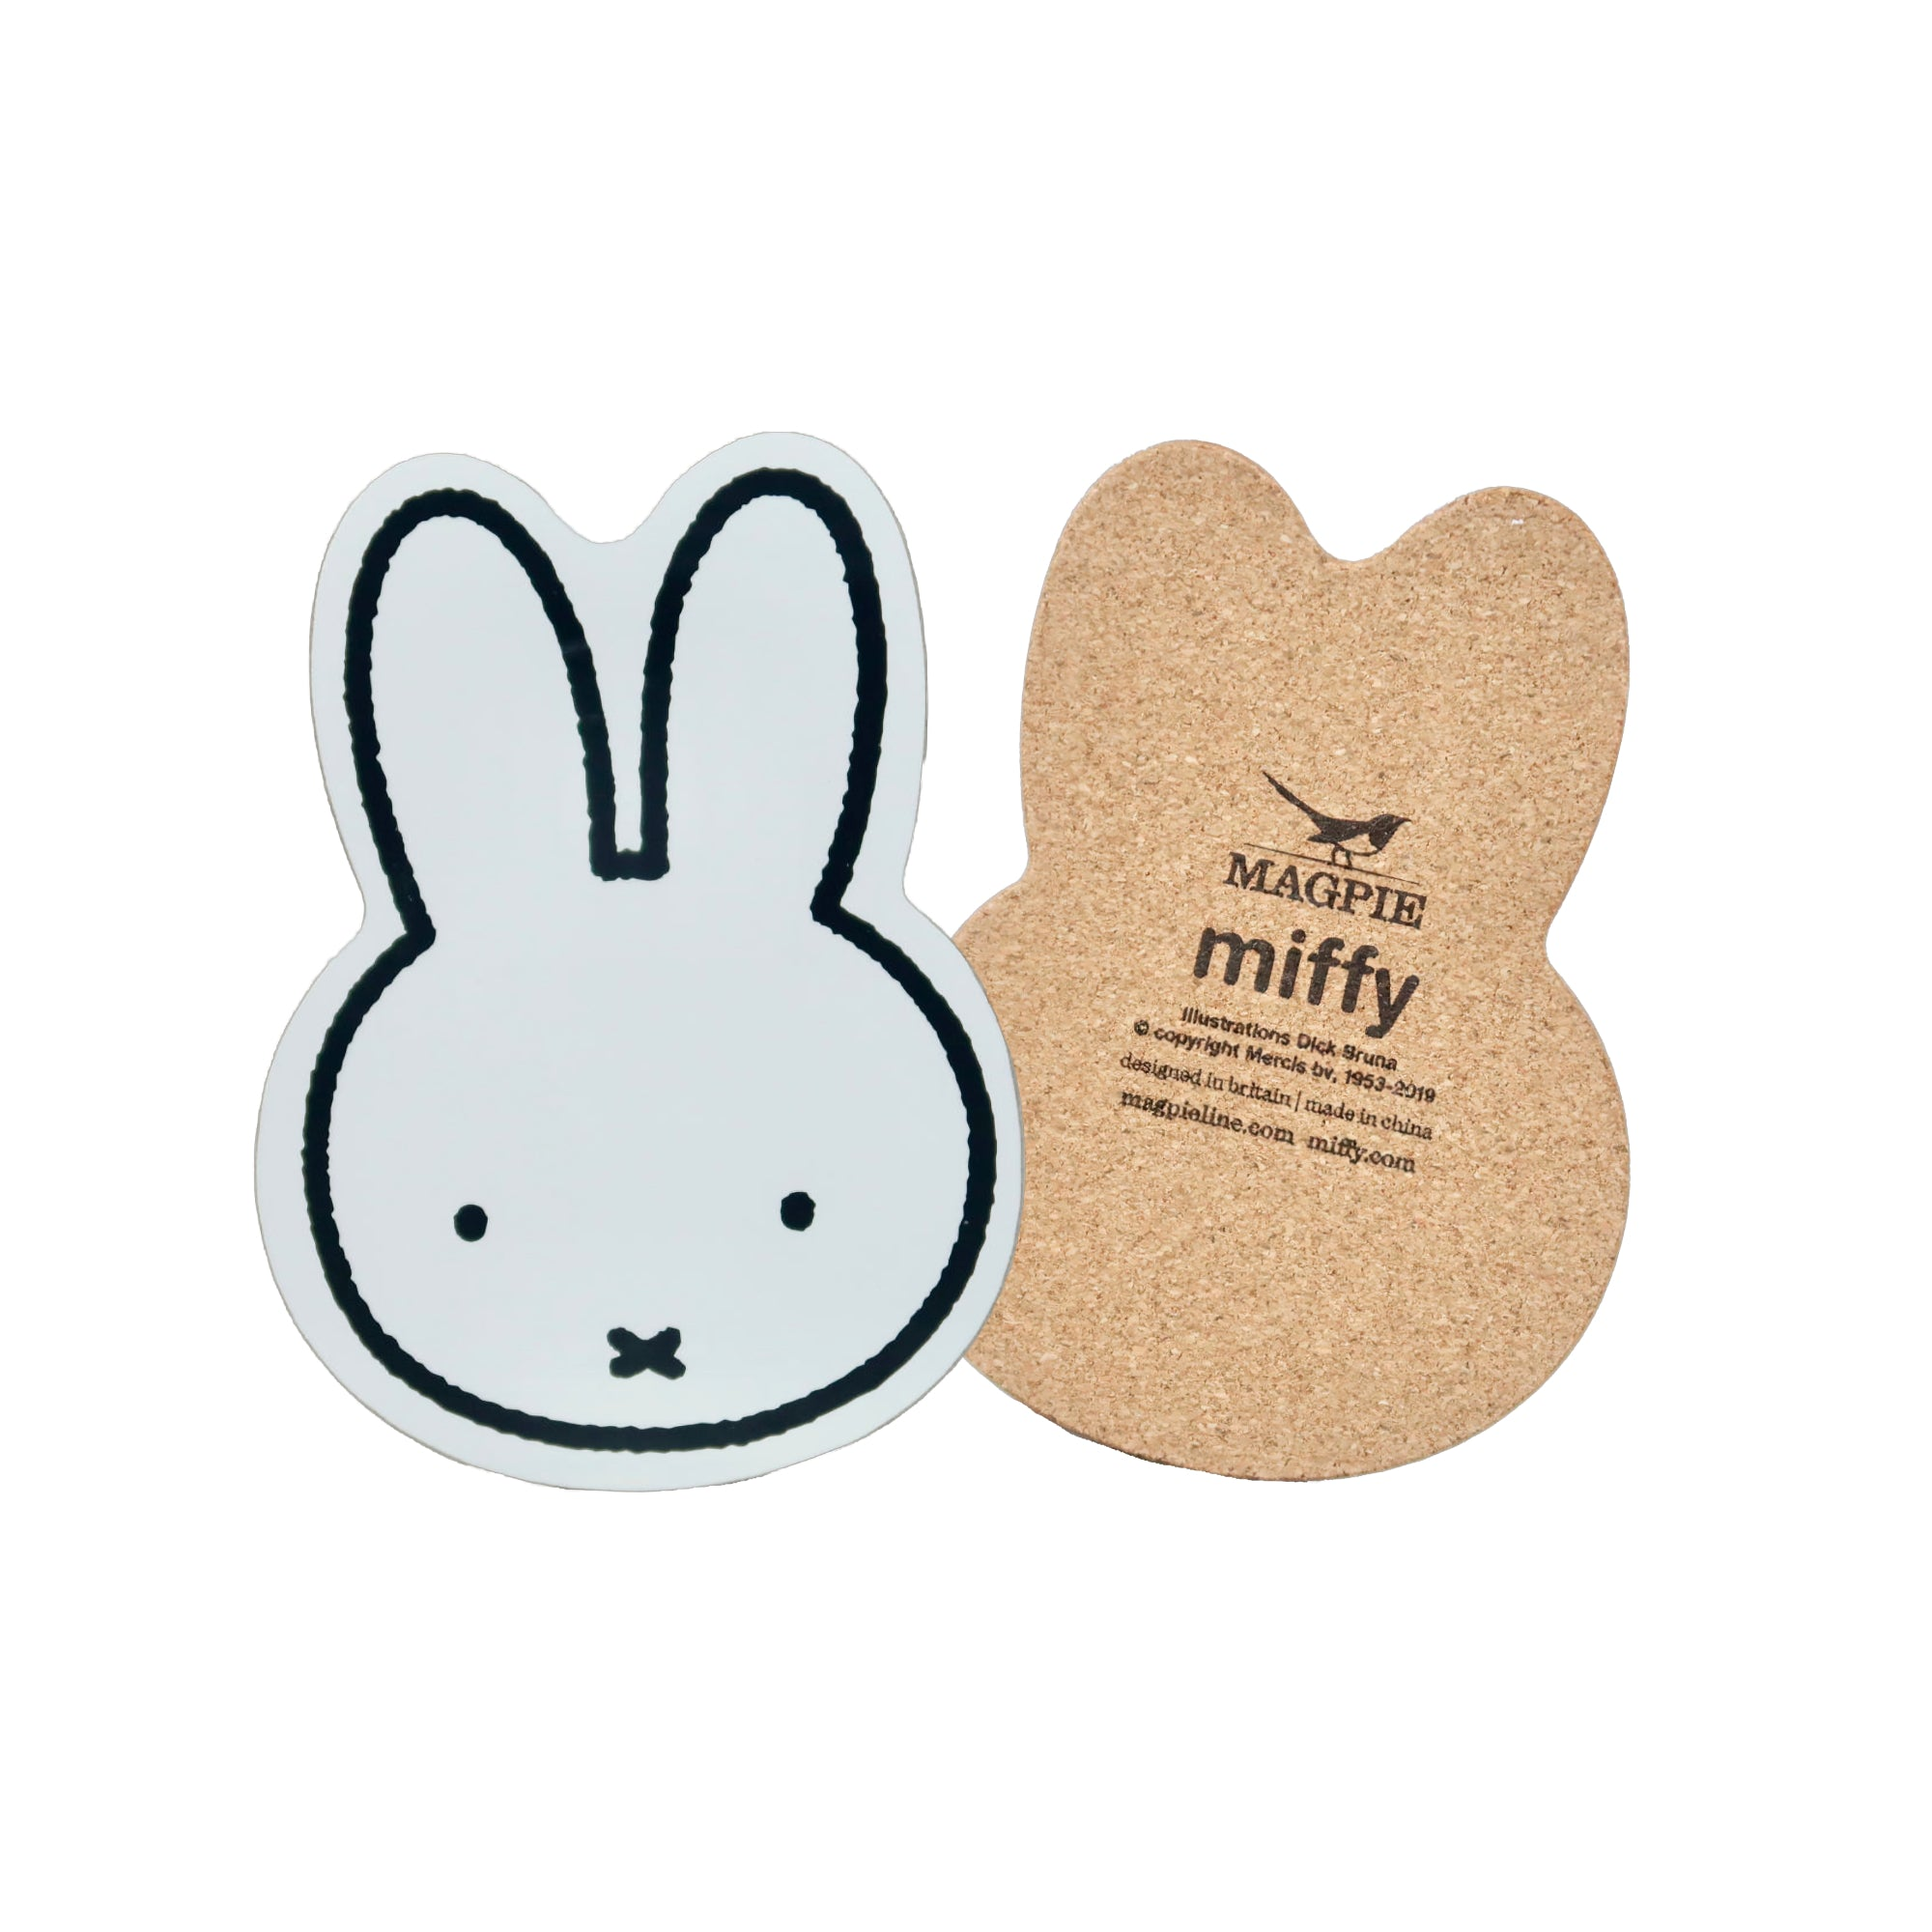 Miffy Face Coaster 4-Pack